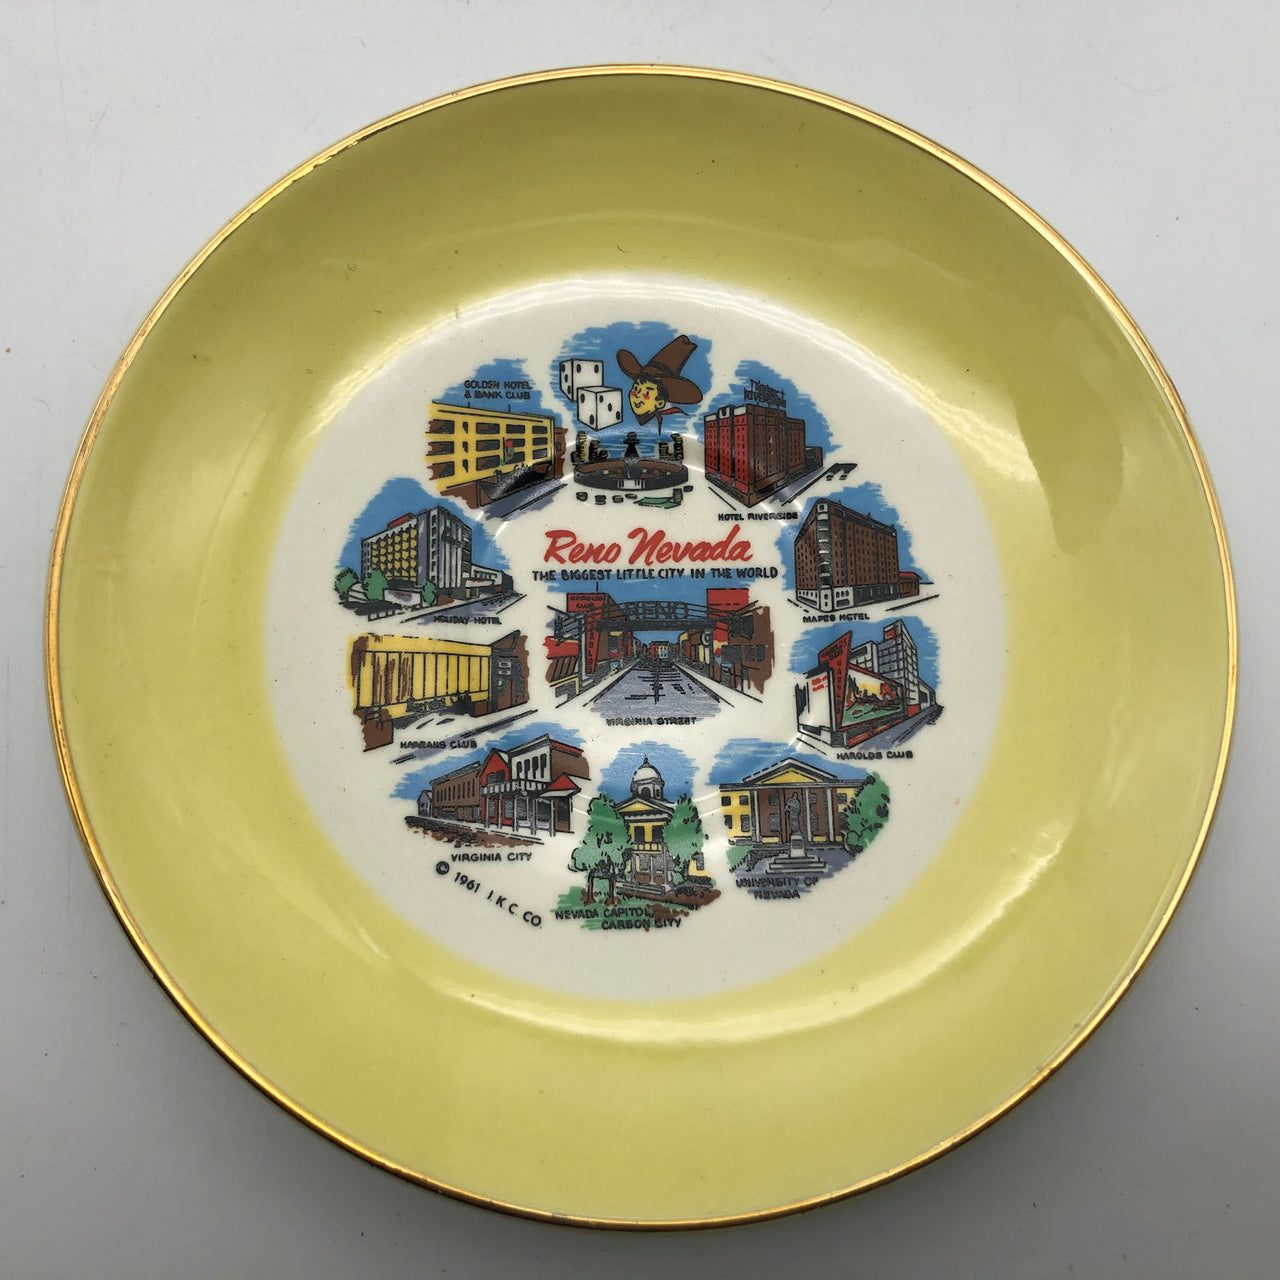 Vintage Reno Nevada Souvenir Plate Holiday Golden Mapes Hotel 1961 I.K.C. Co.